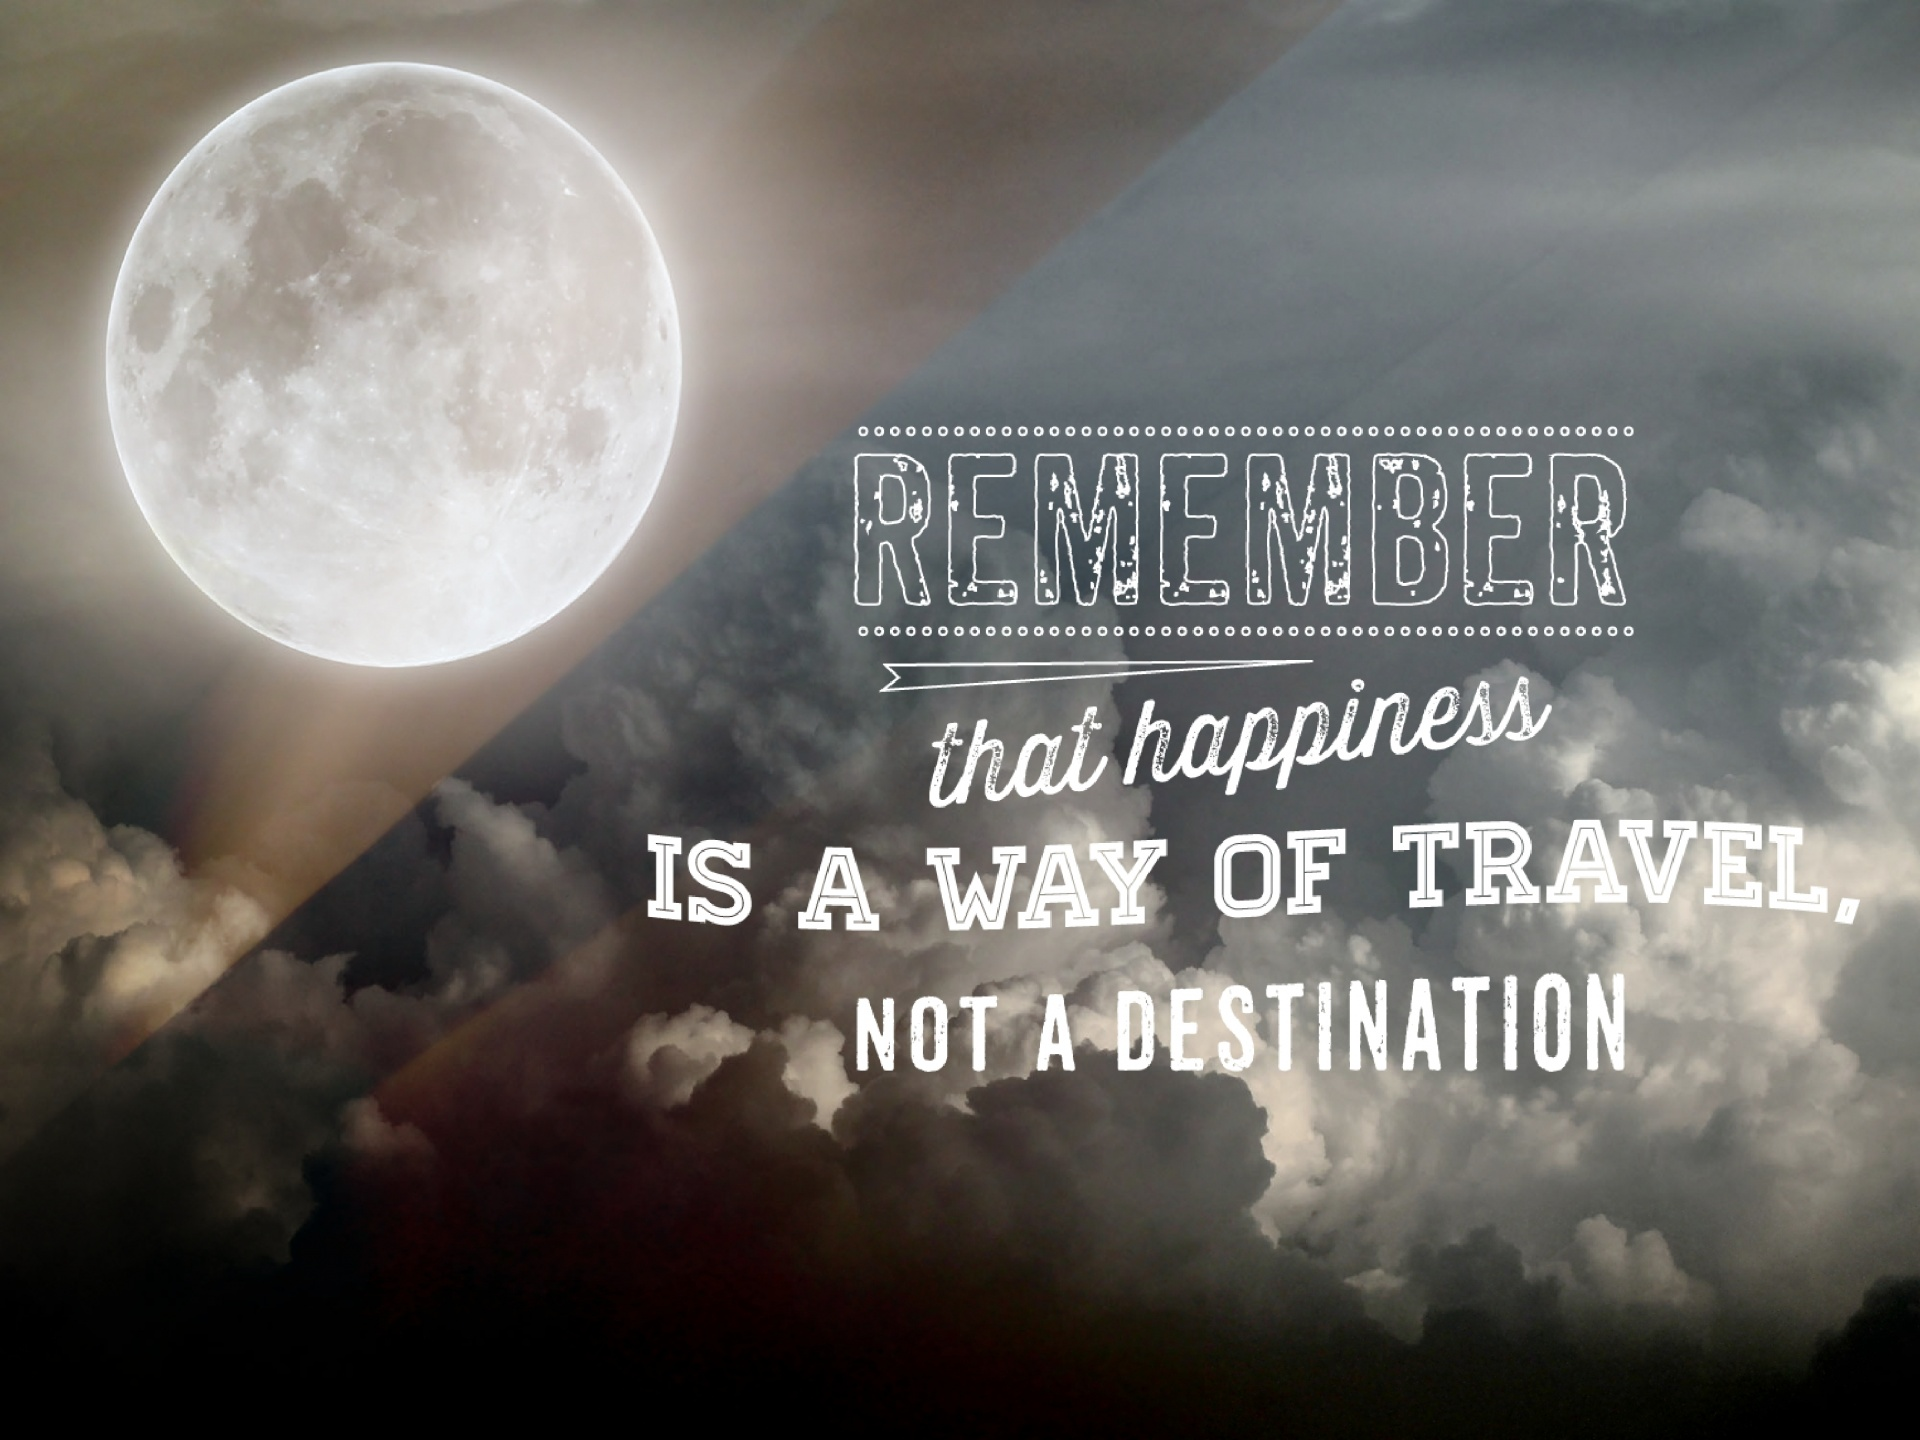 Happiness, Inspirational Quote, Traveling